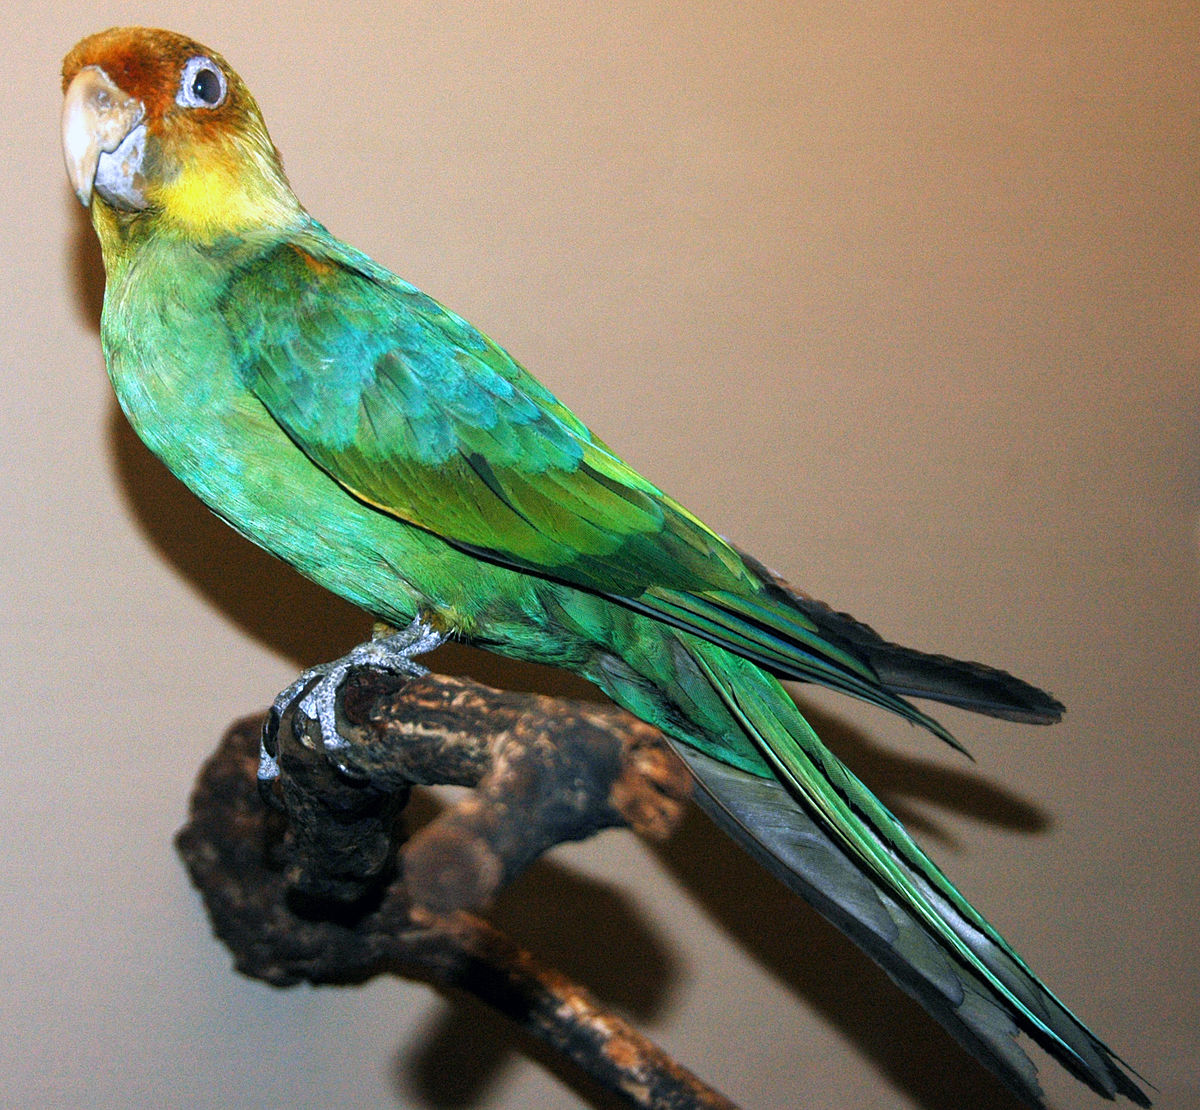 Carolina Parakeet Image Three